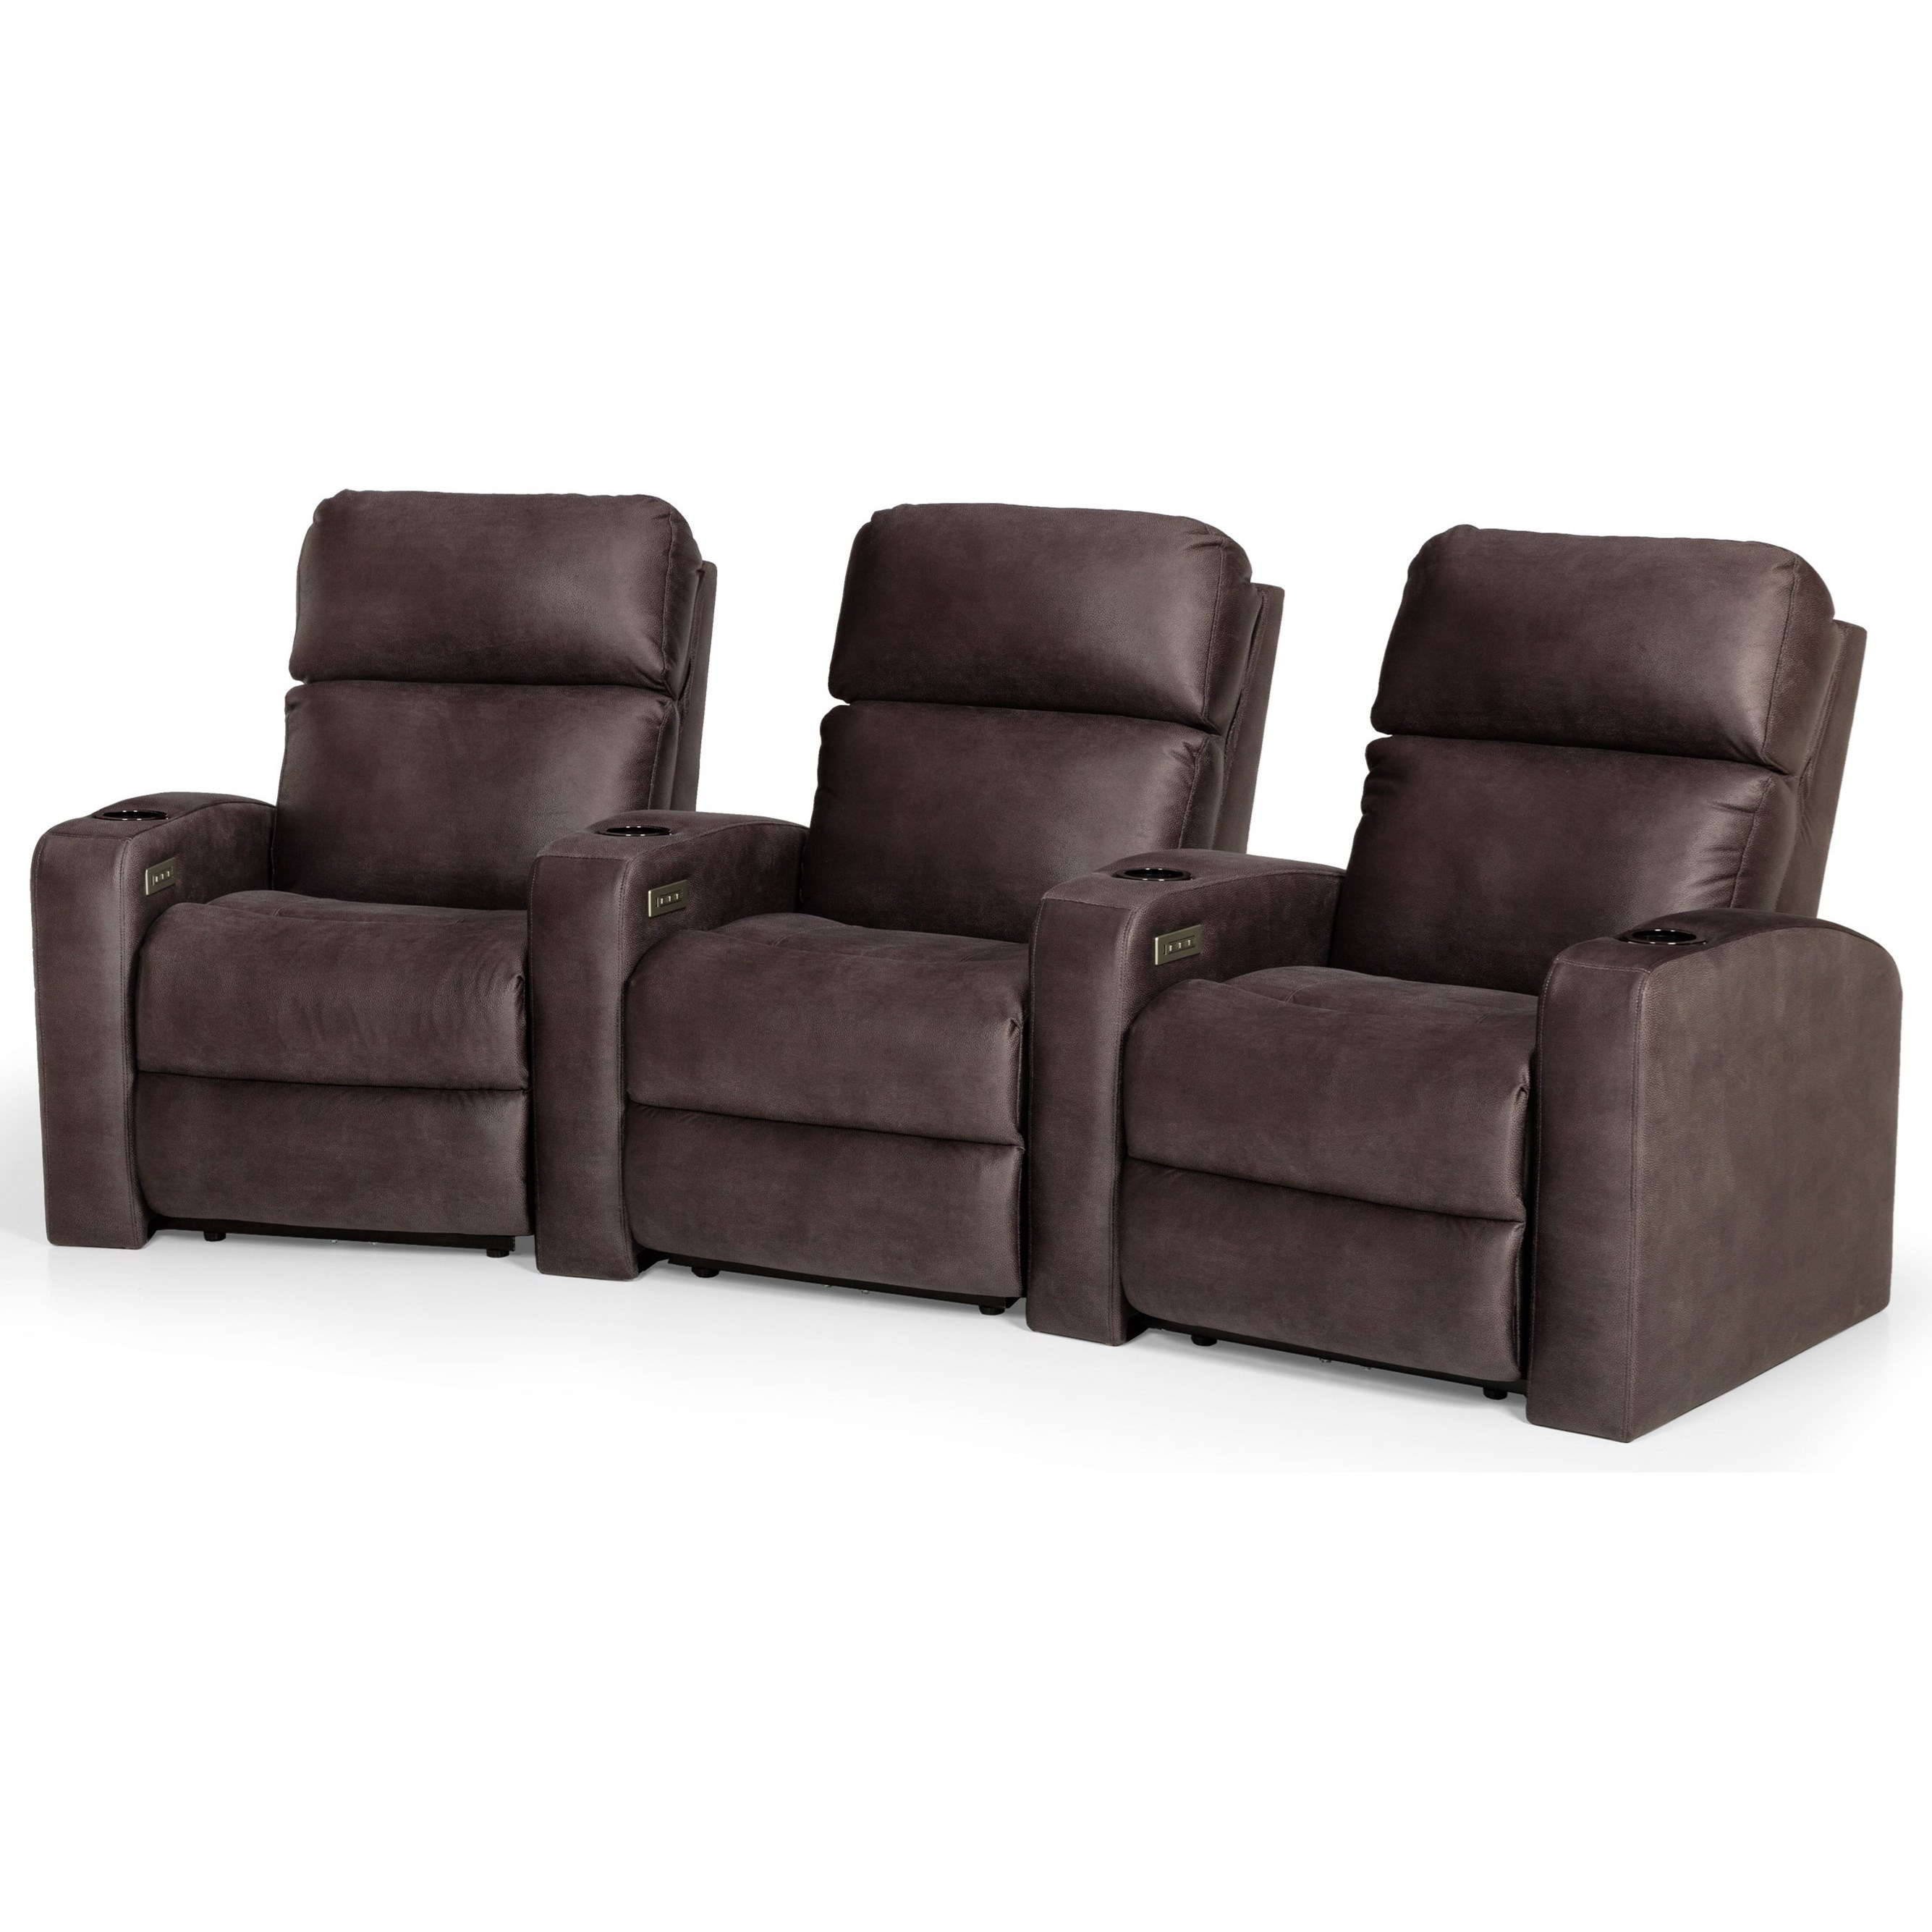 850 3-Seat Power Reclining Home Theater Group by Stanton at Wilson's Furniture